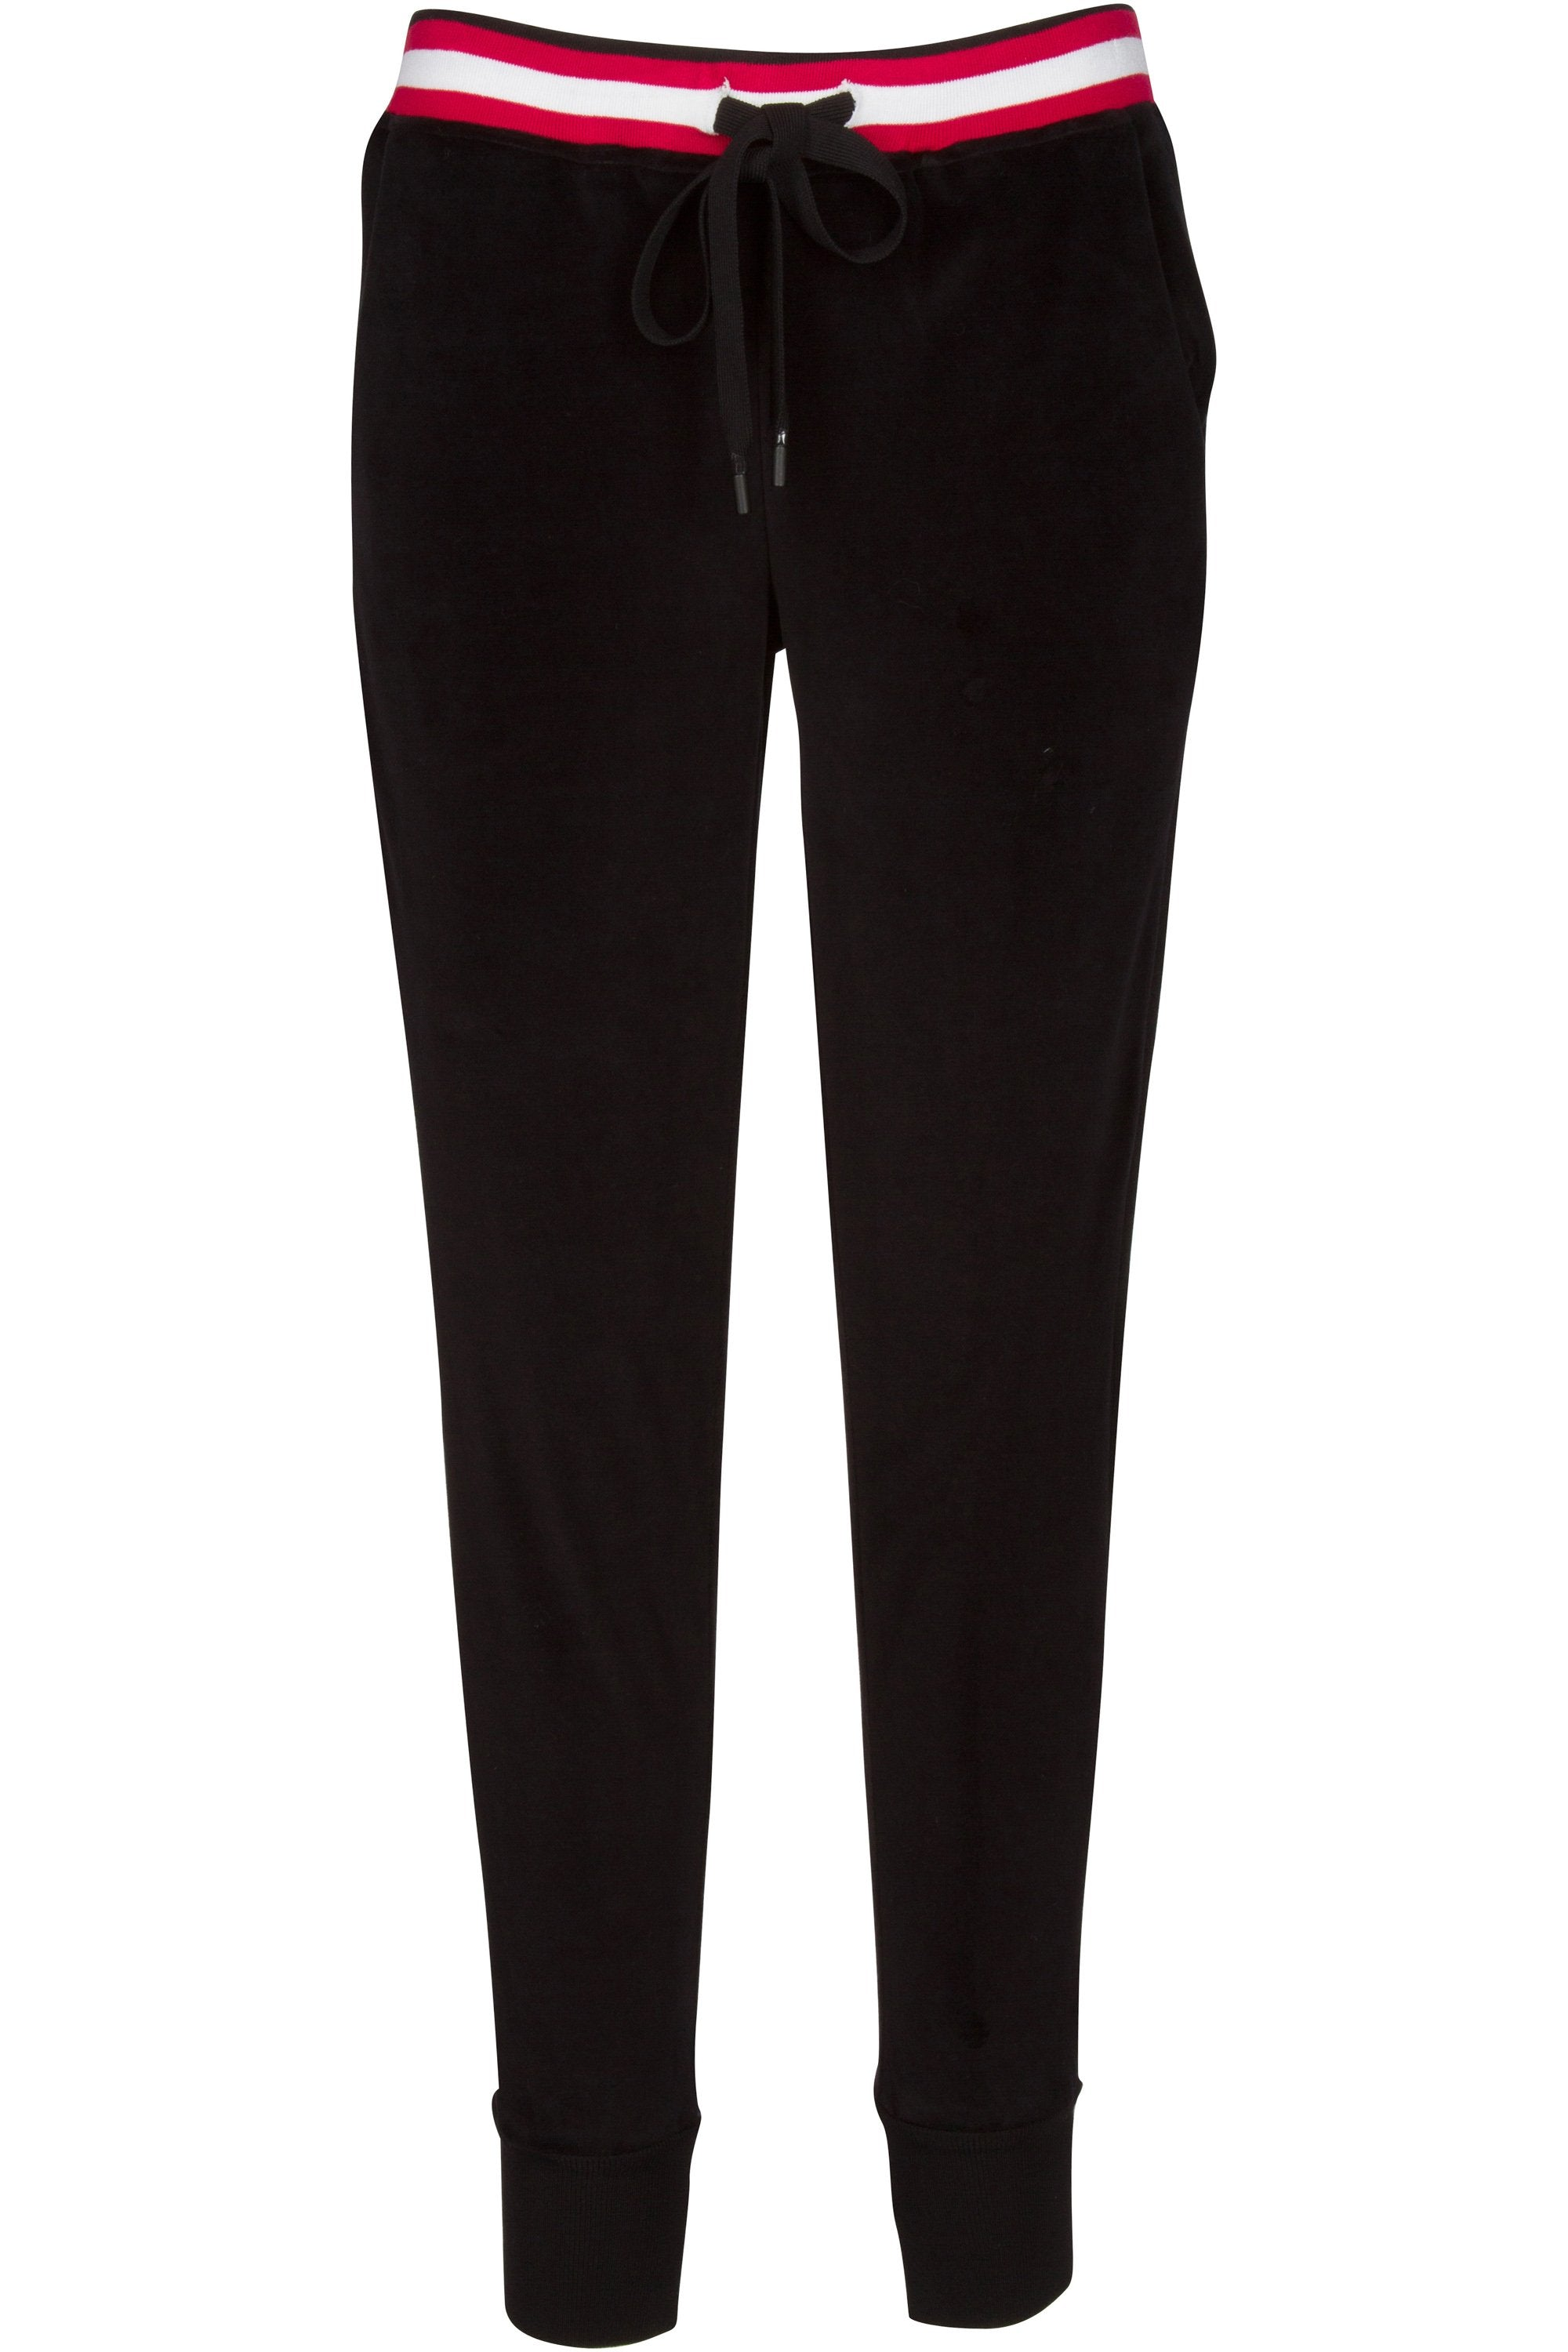 VELOUR JOGGER PANTS by KENDALL + KYLIE